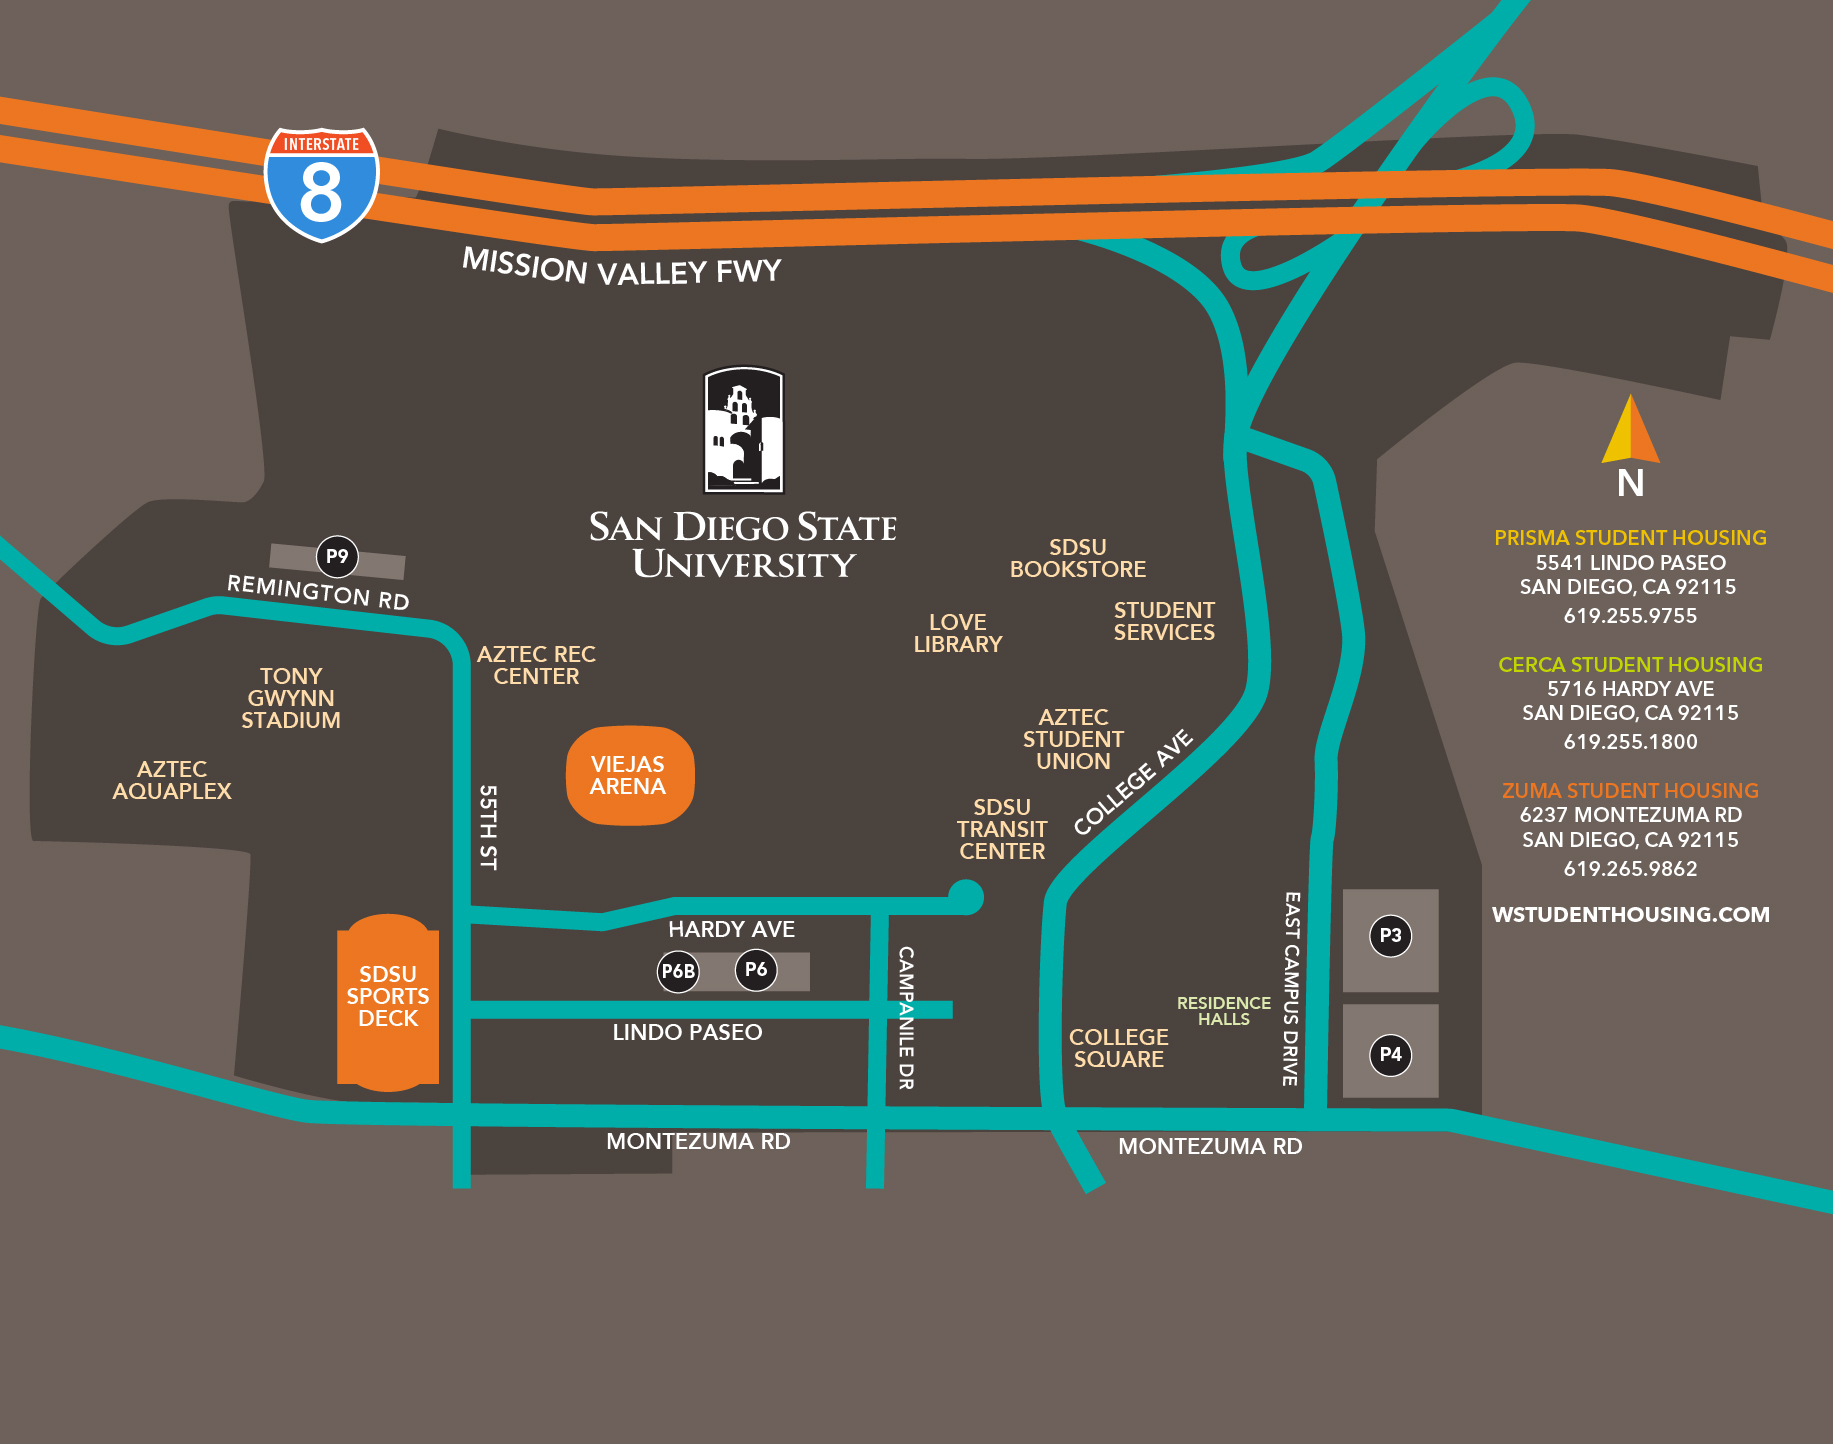 SDSU campus map with W Student Housing community links